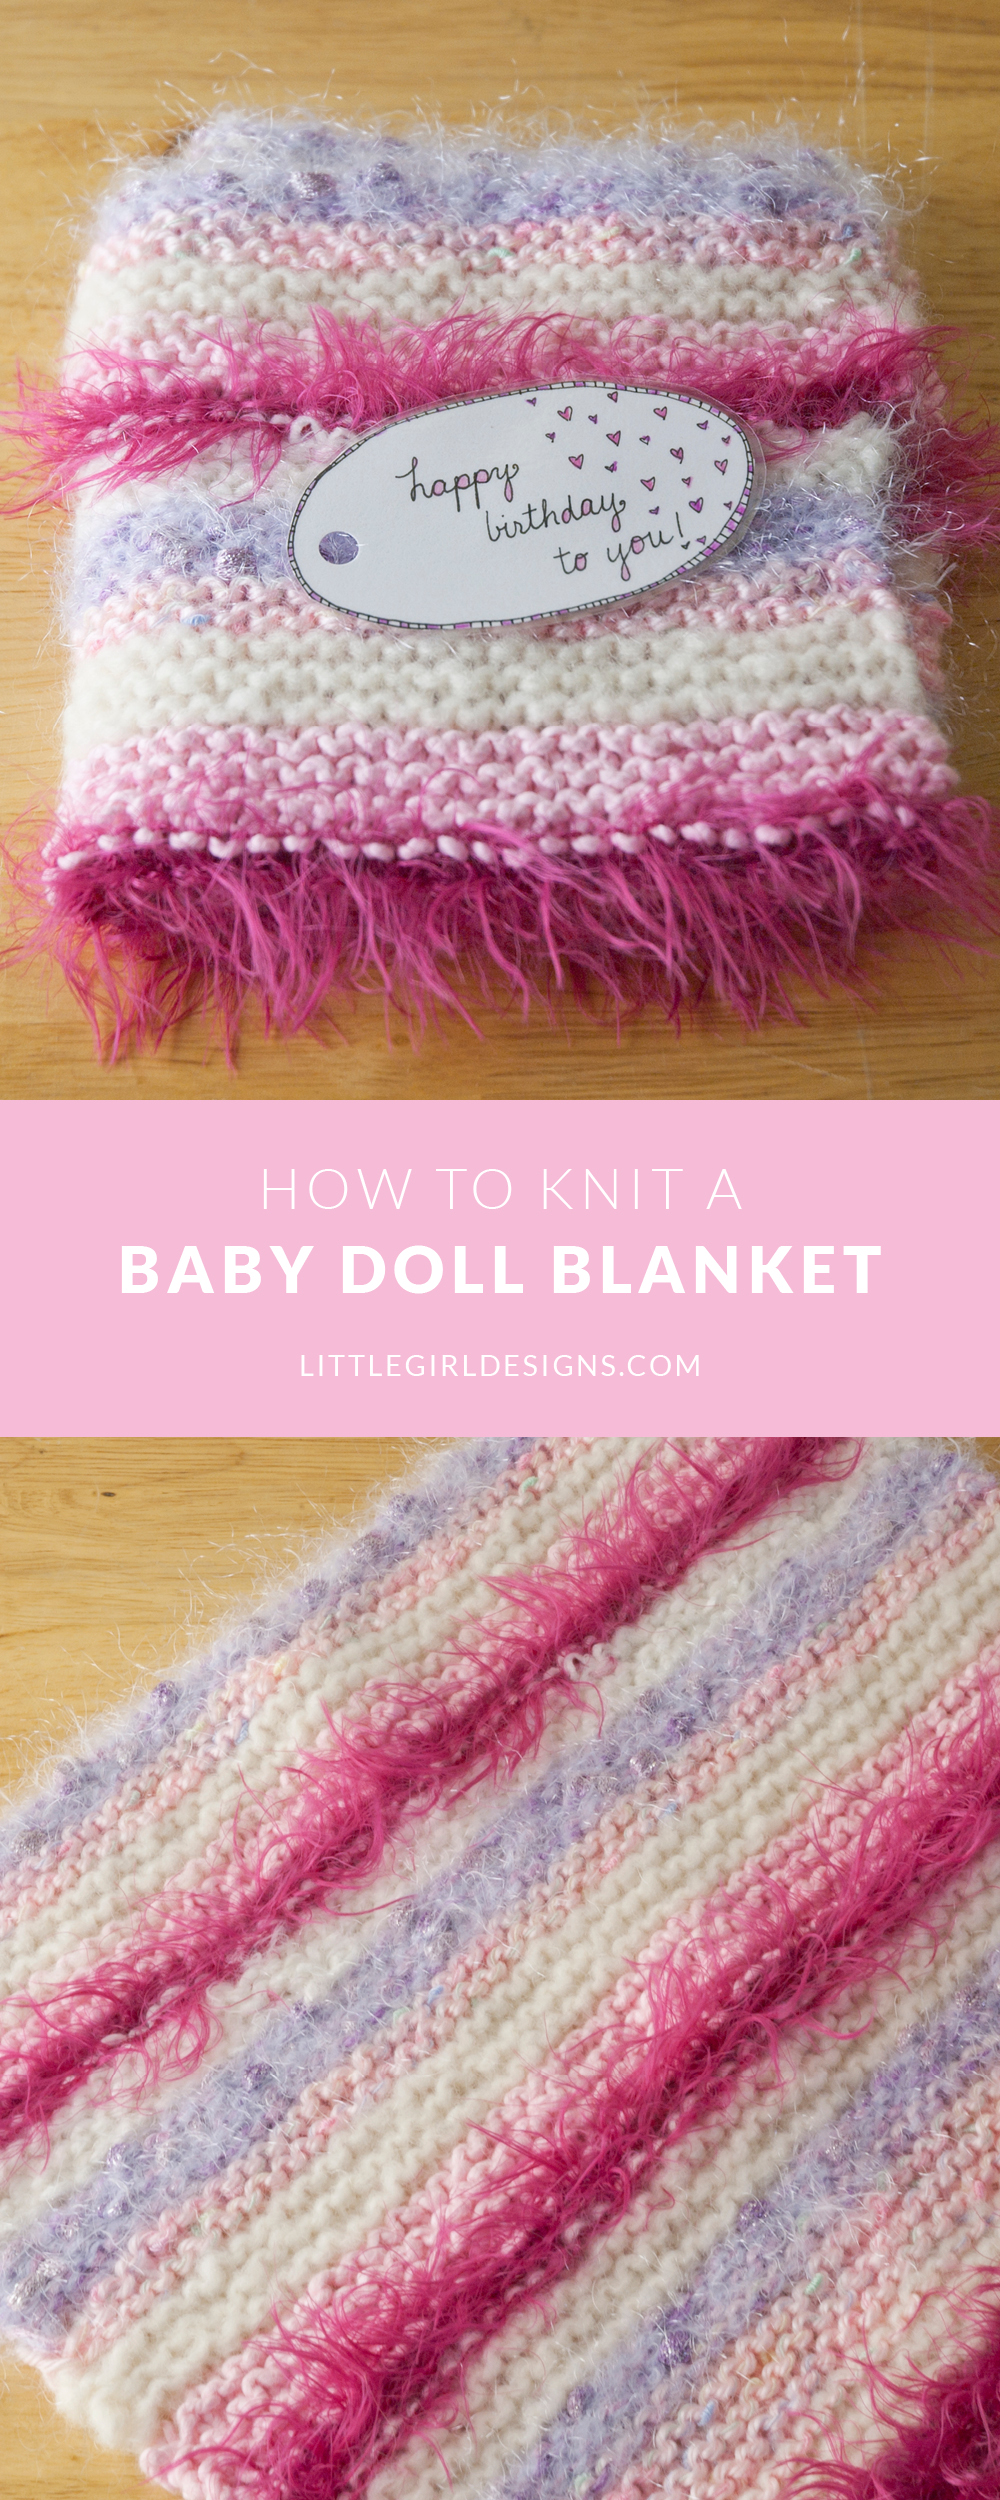 Knitting Doll How To Use : How to knit a simple baby doll blanket jennie moraitis